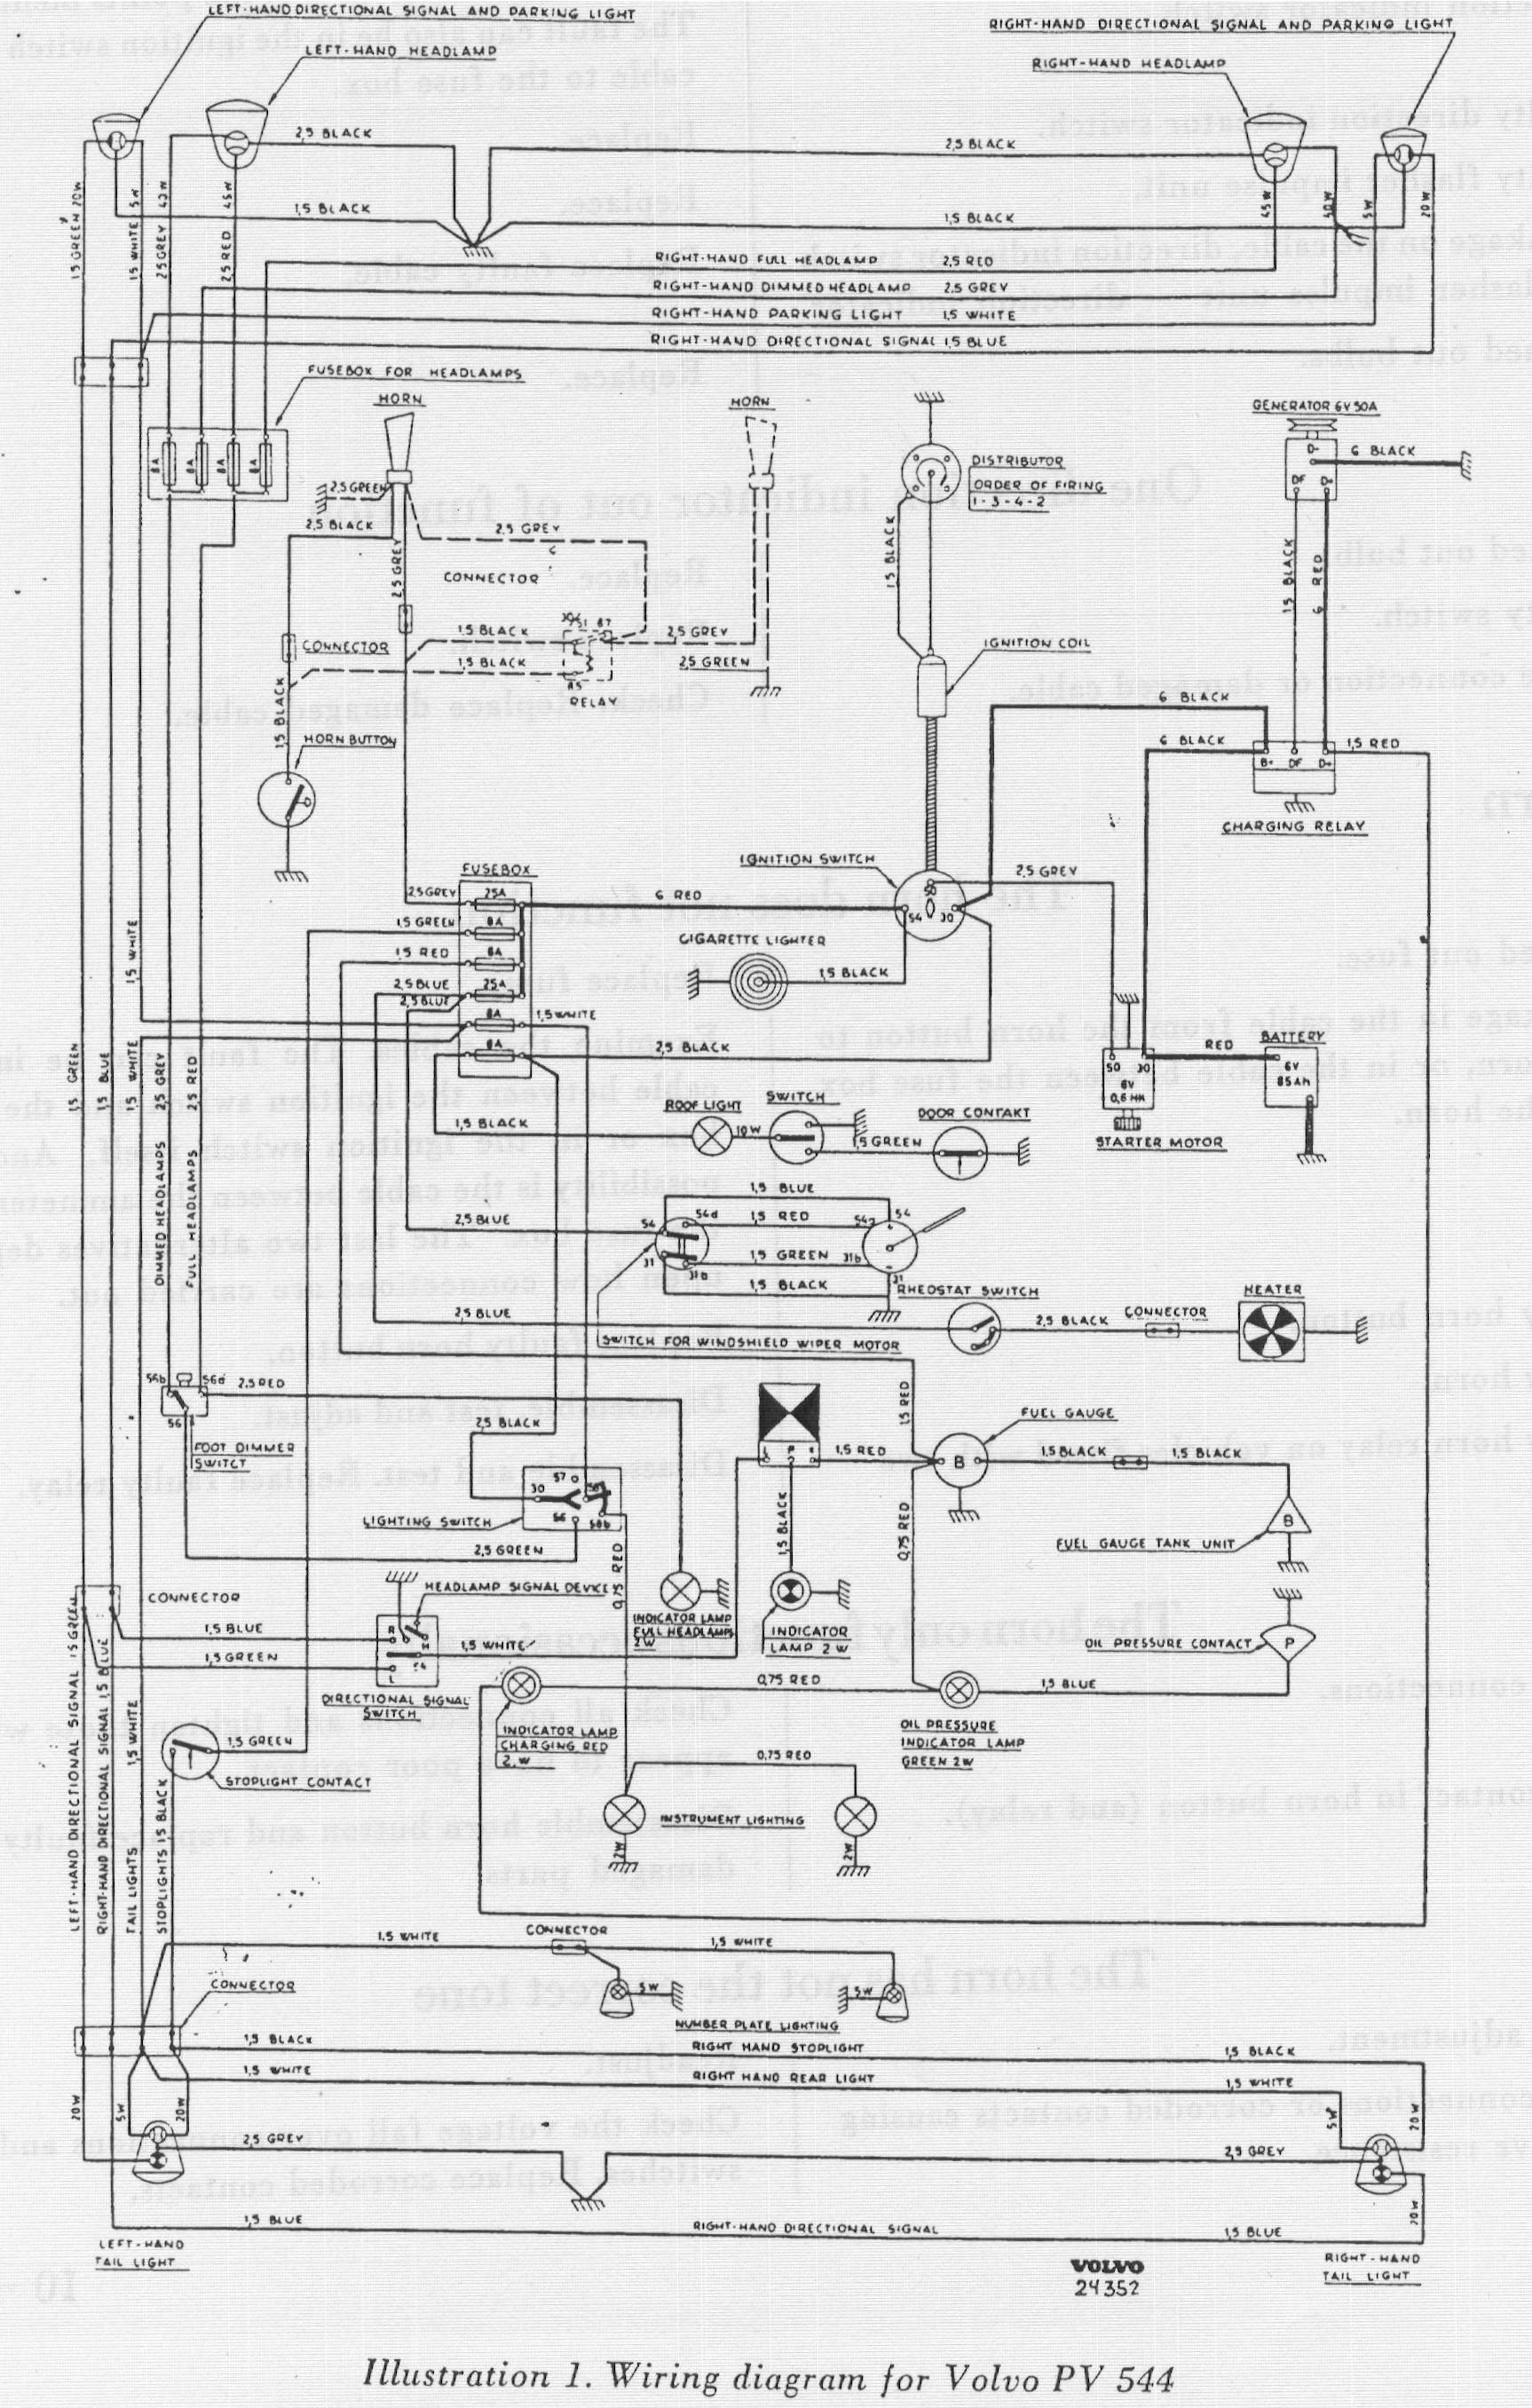 1996 Volvo 850 Radio Wiring Diagram from www.sw-em.com